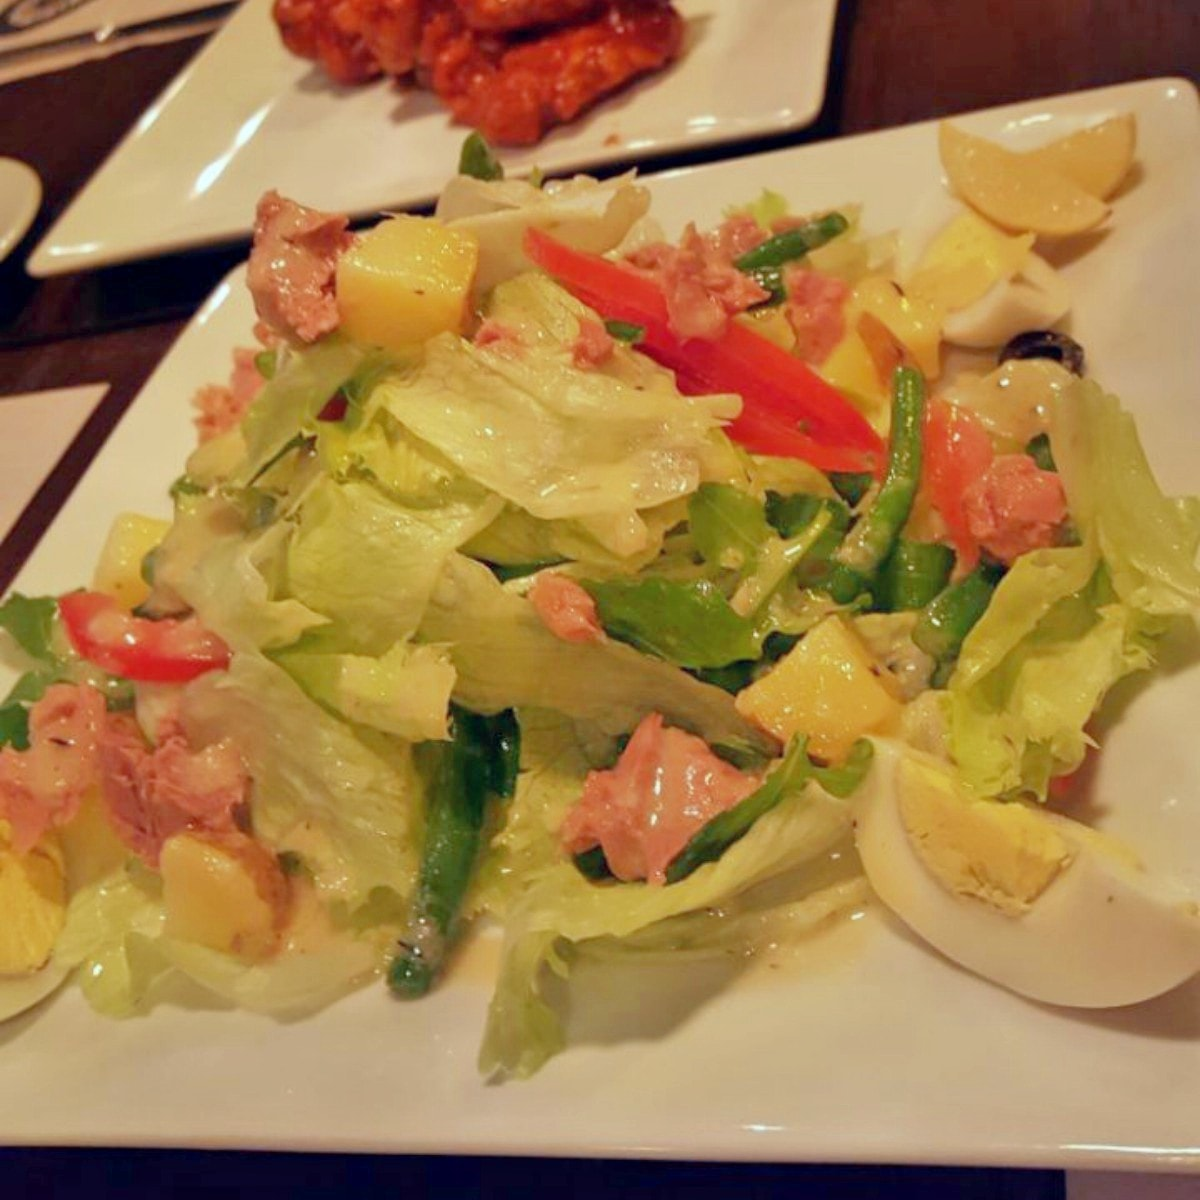 The Salad Nicoise is for the health conscious